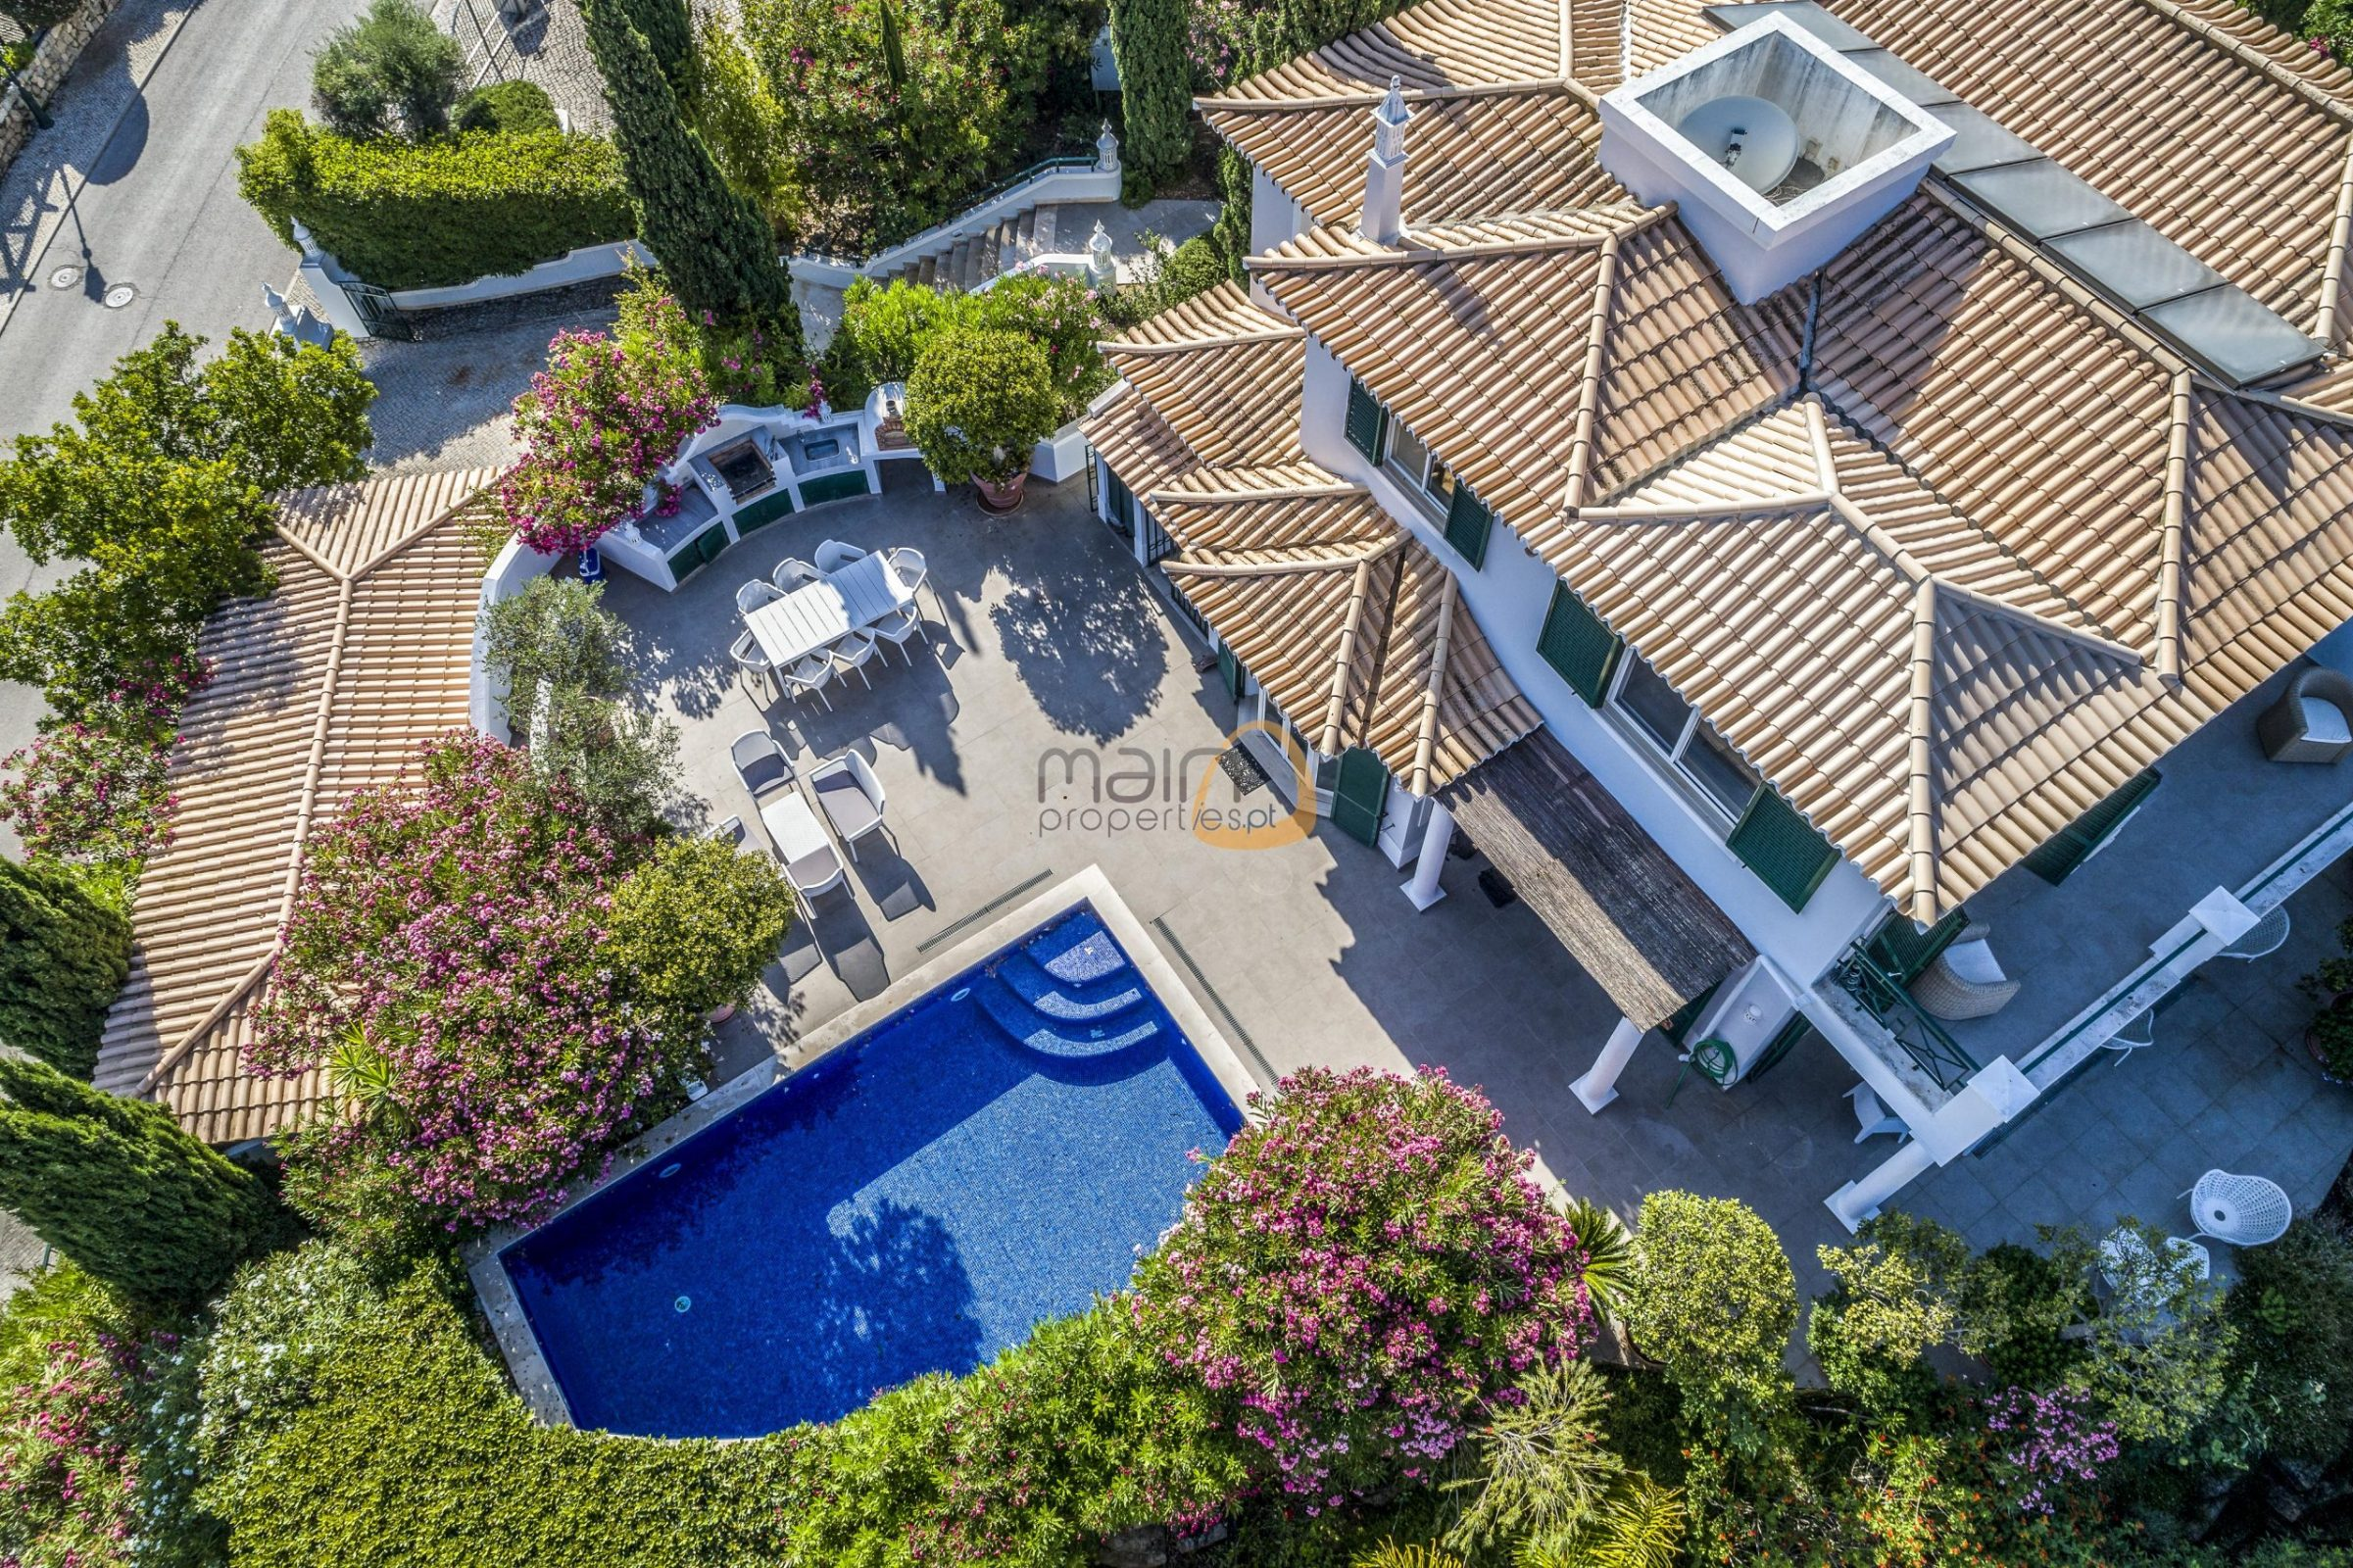 [:pt]Moradia de 3 quartos com vista mar em Vale do Lobo :: Vista Aerea :: MainProperties :: PC357[:en]3 bedroom villa with sea view in Vale do Lobo :: Aerial Views 1 :: MainProperties :: PC357[:]